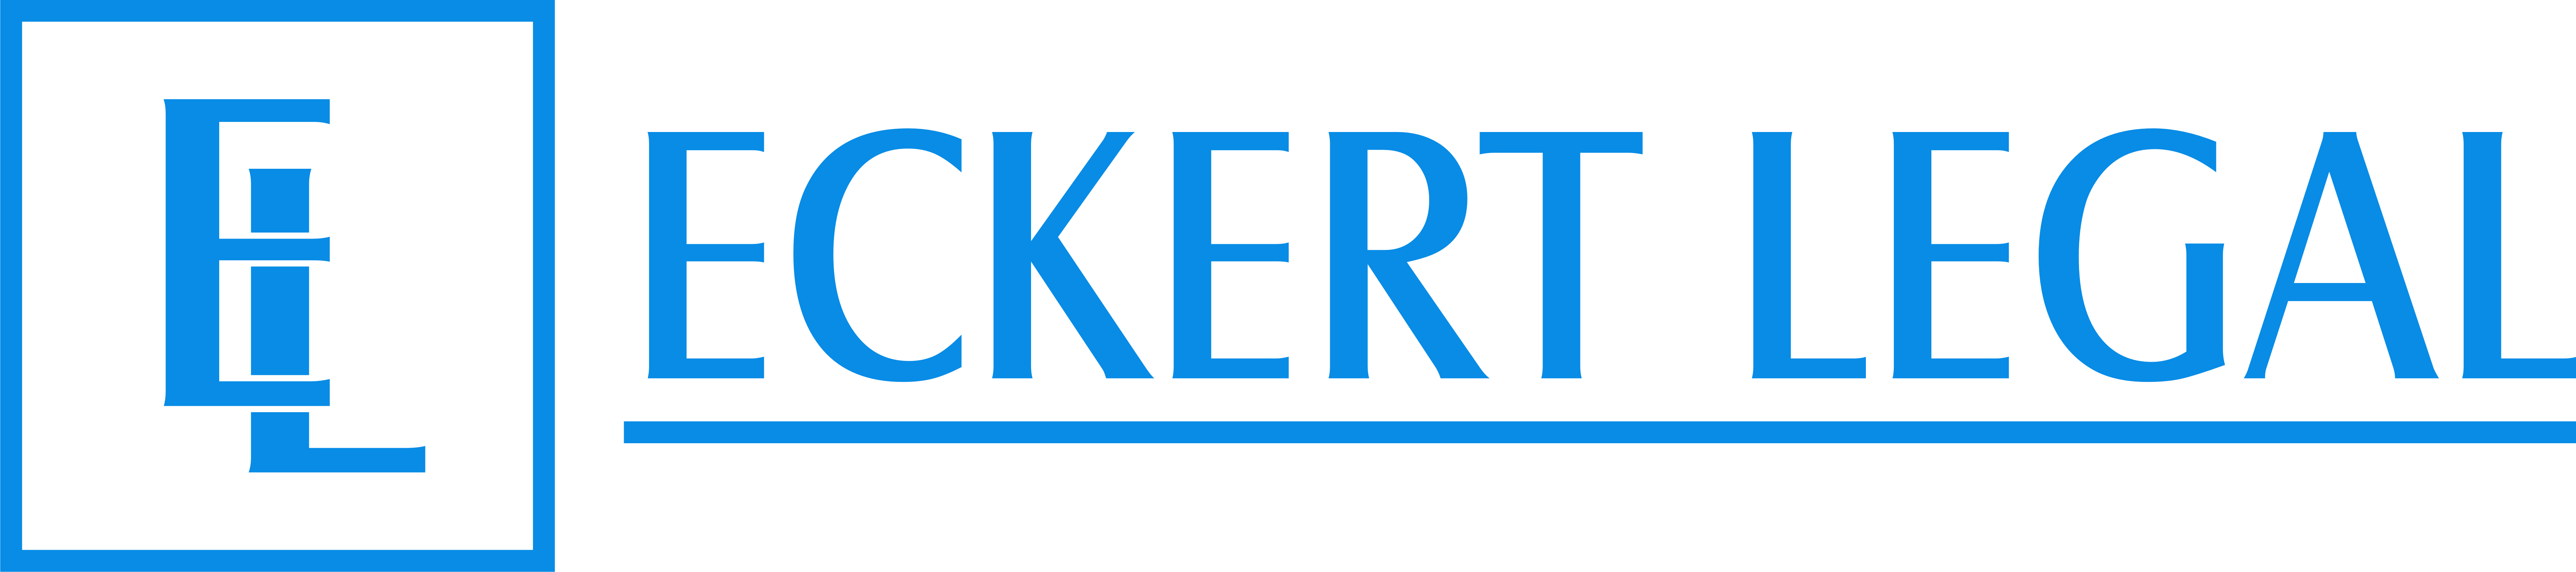 Eckert Legal - Blacktown Lawyers